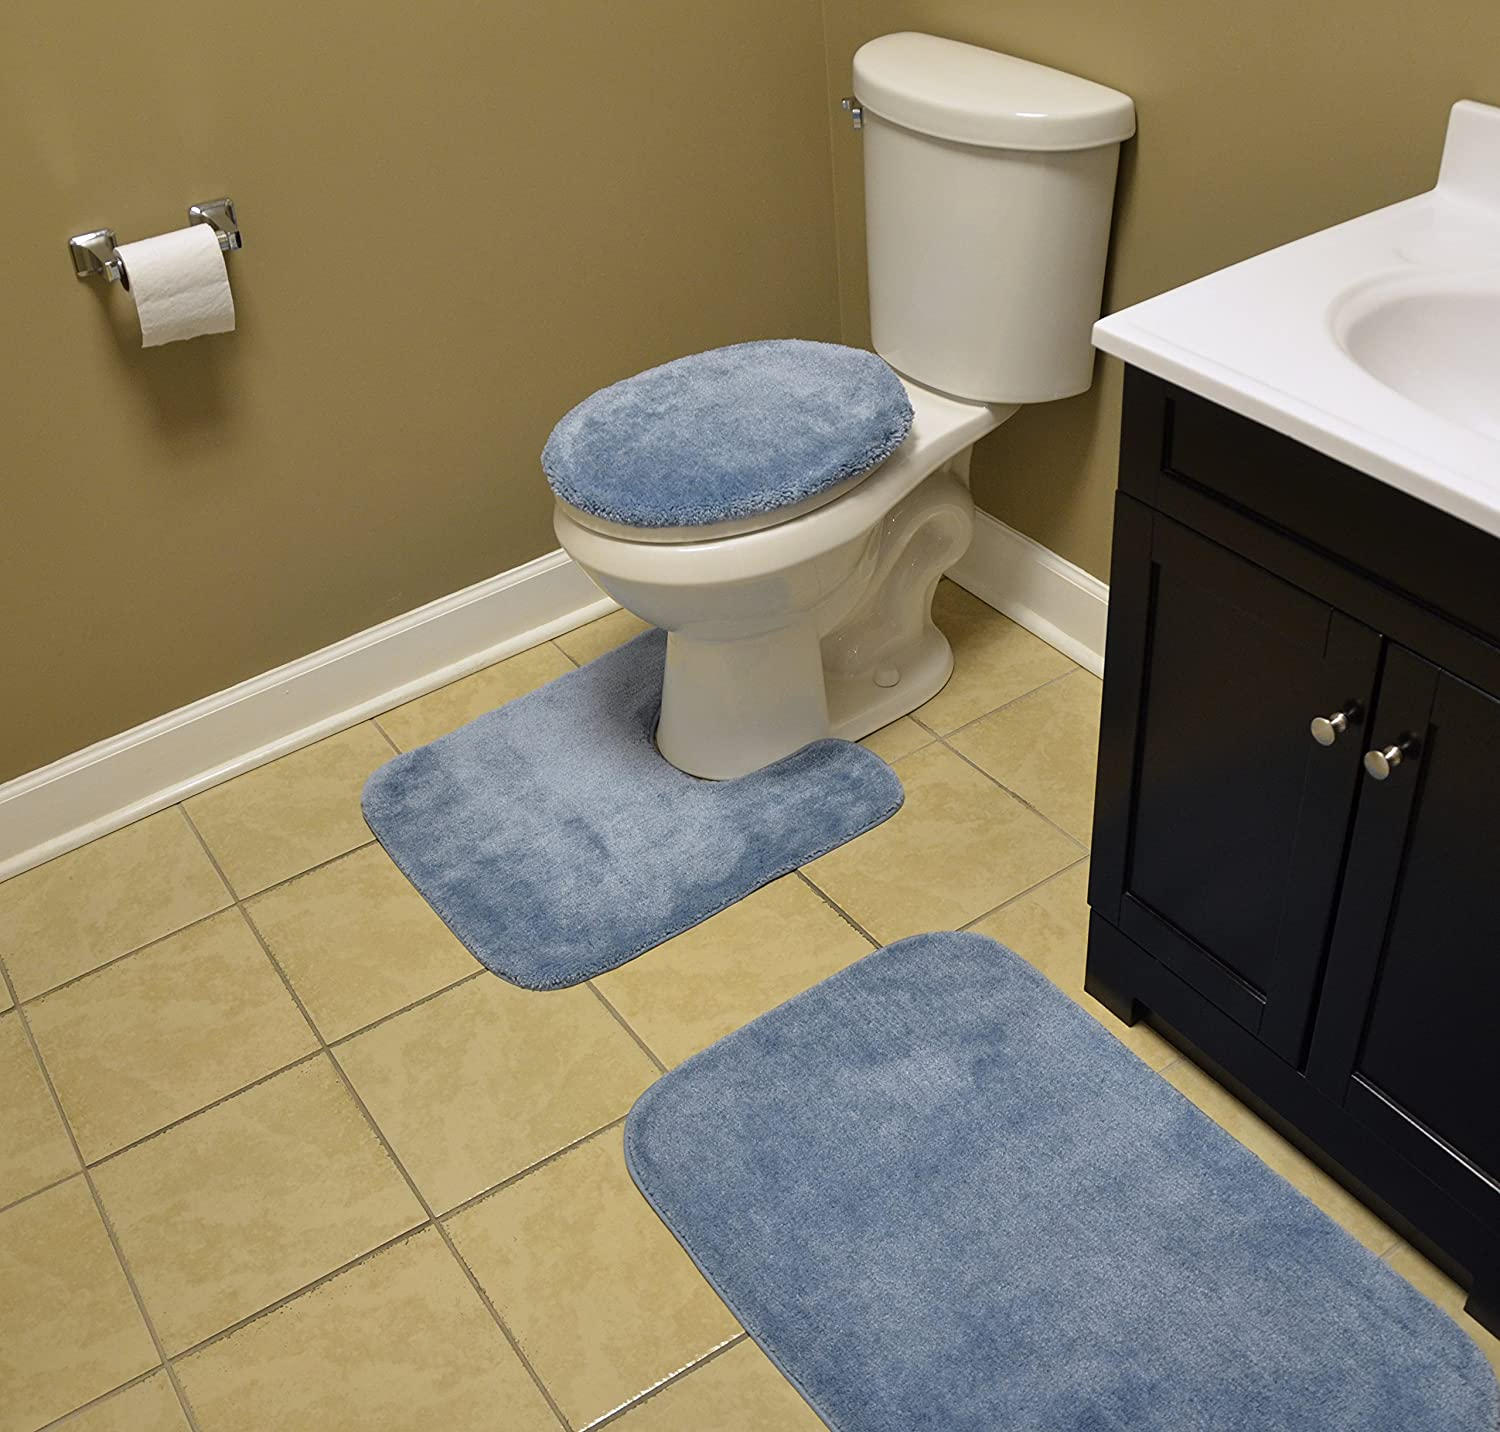 Garland Rug BA010W3P02J4 Traditional Bath Rug Set, 3-Piece Set, Basin bluee